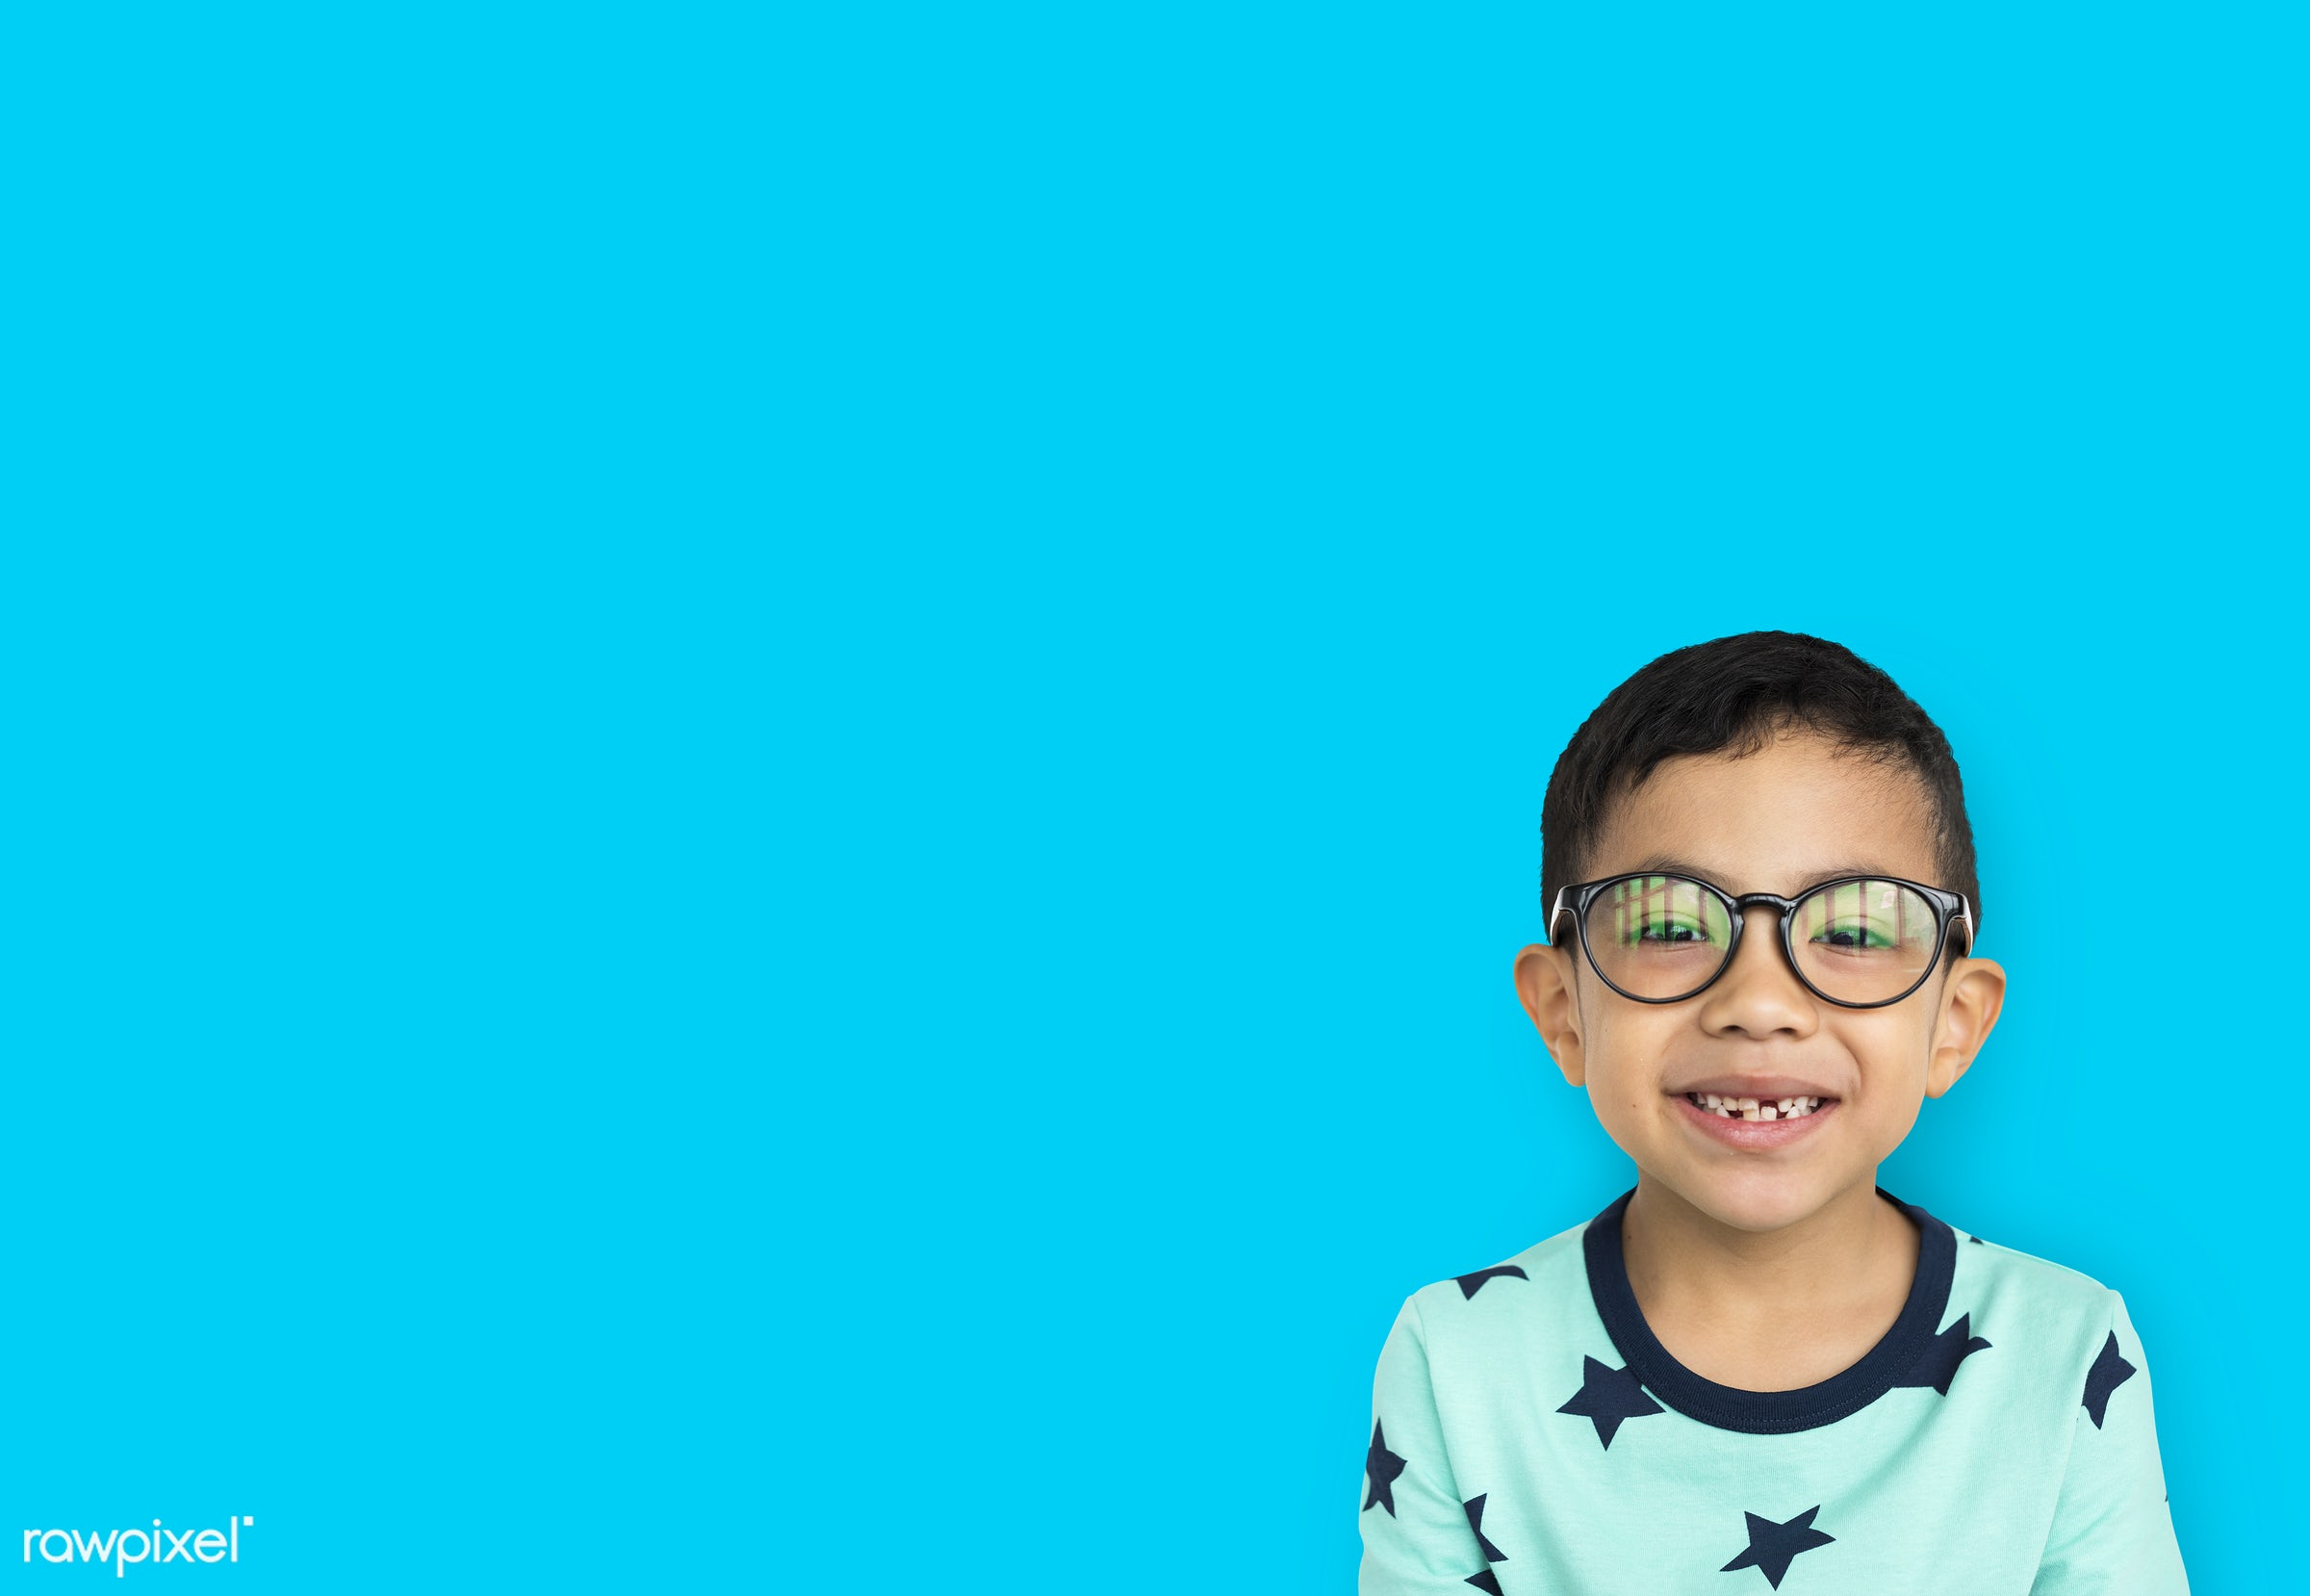 alone, boy, cheerful, child, eyeglasses, isolated, kid, one, playful, smiling, wearing, young, youth